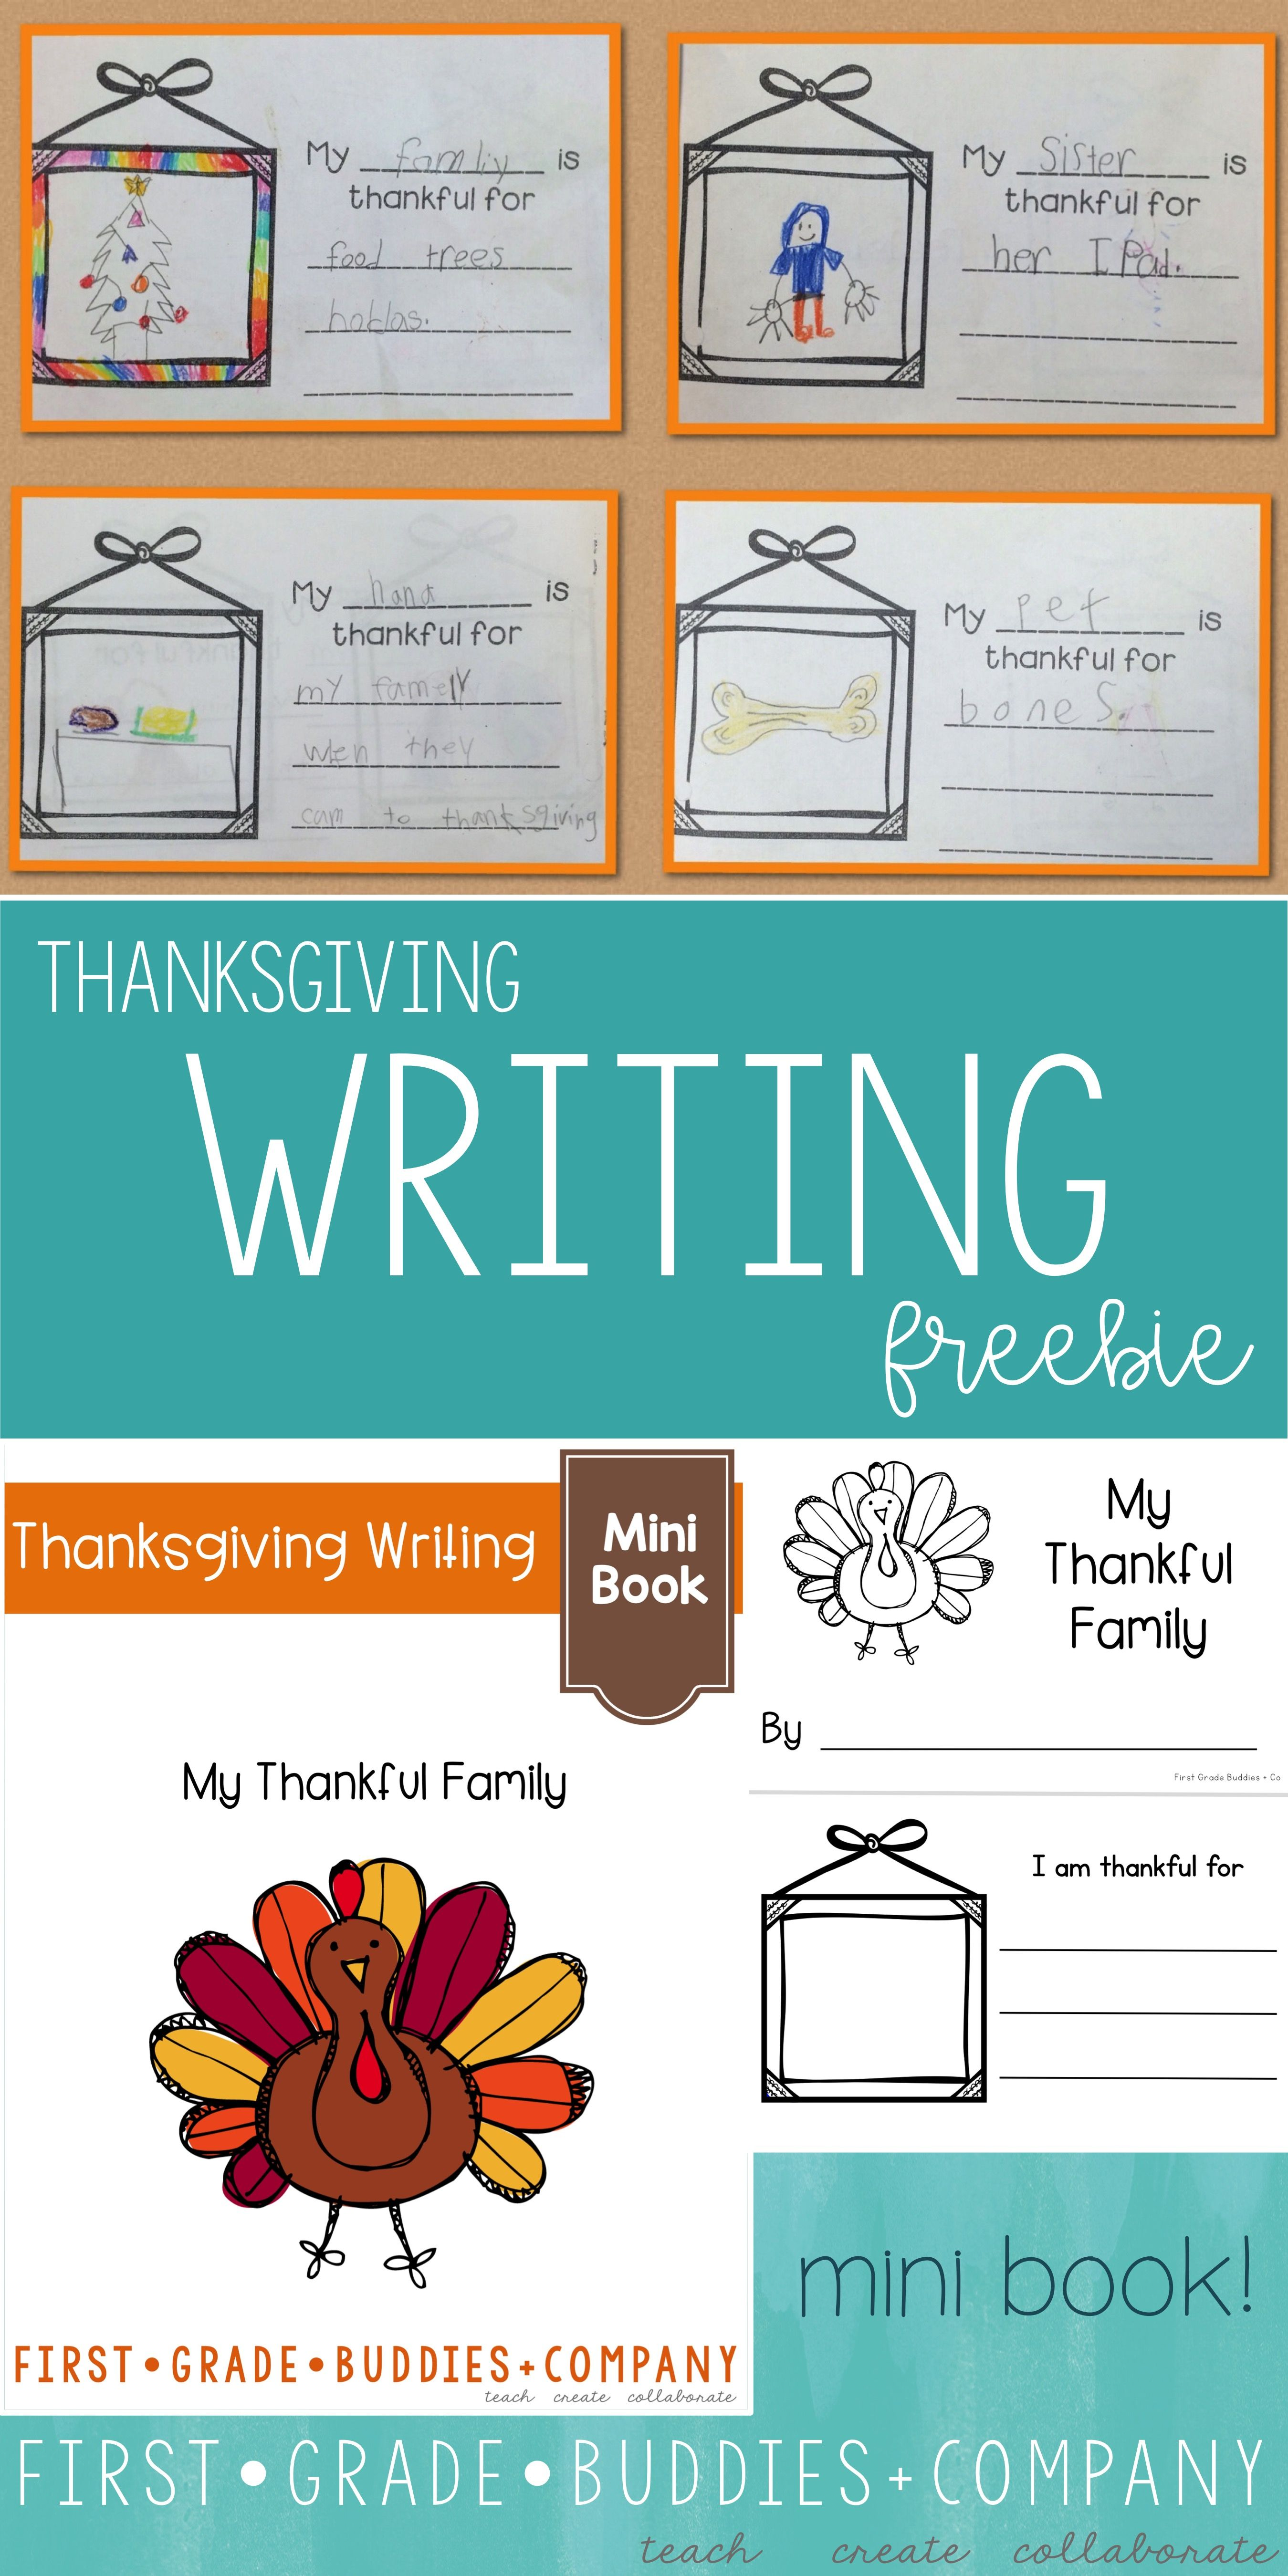 medium resolution of Pin on First Grade Buddies Resources On TpT